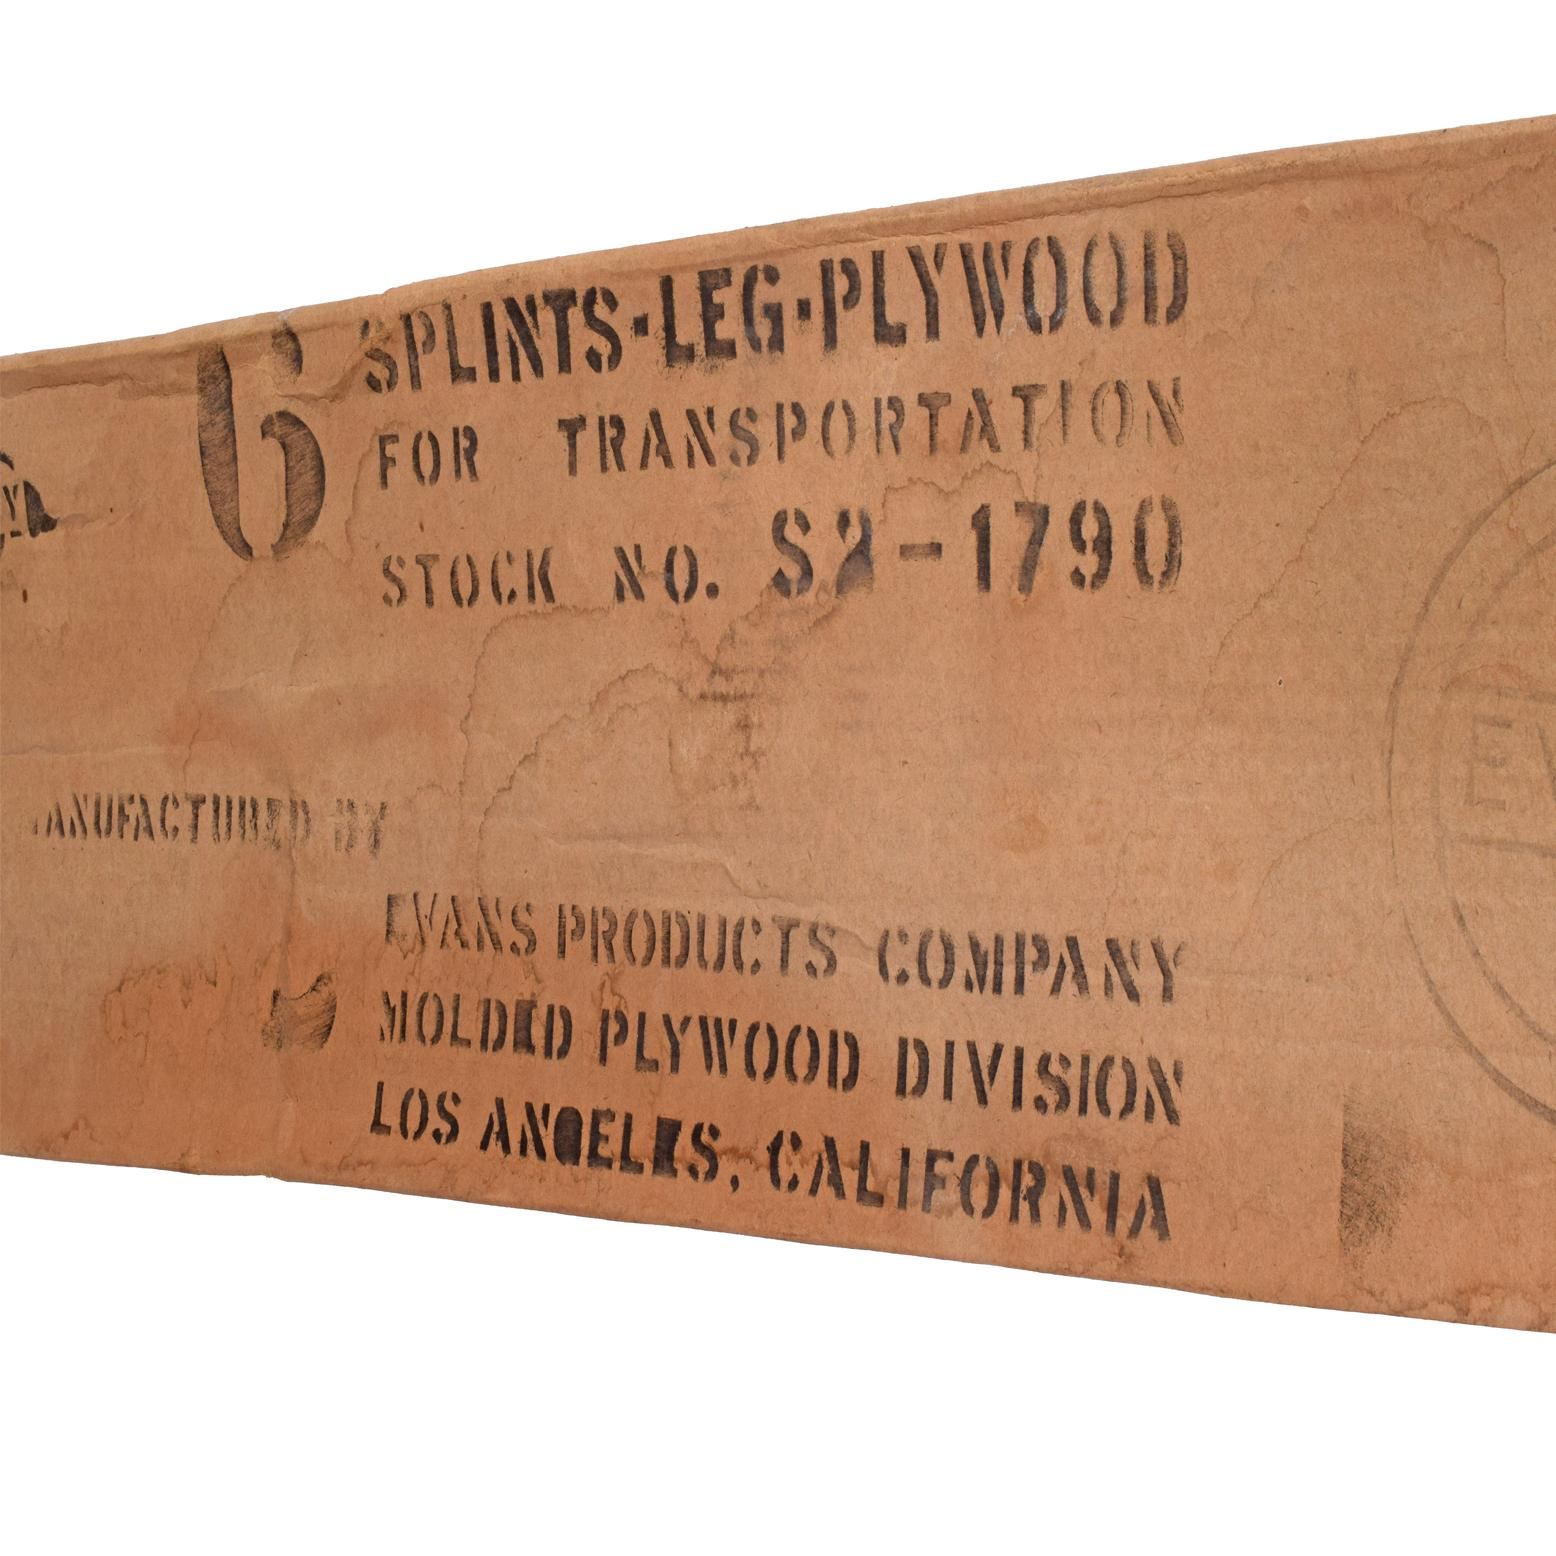 Original Box with World War ii Leg Splint by Charles Eames for Evans Plywood